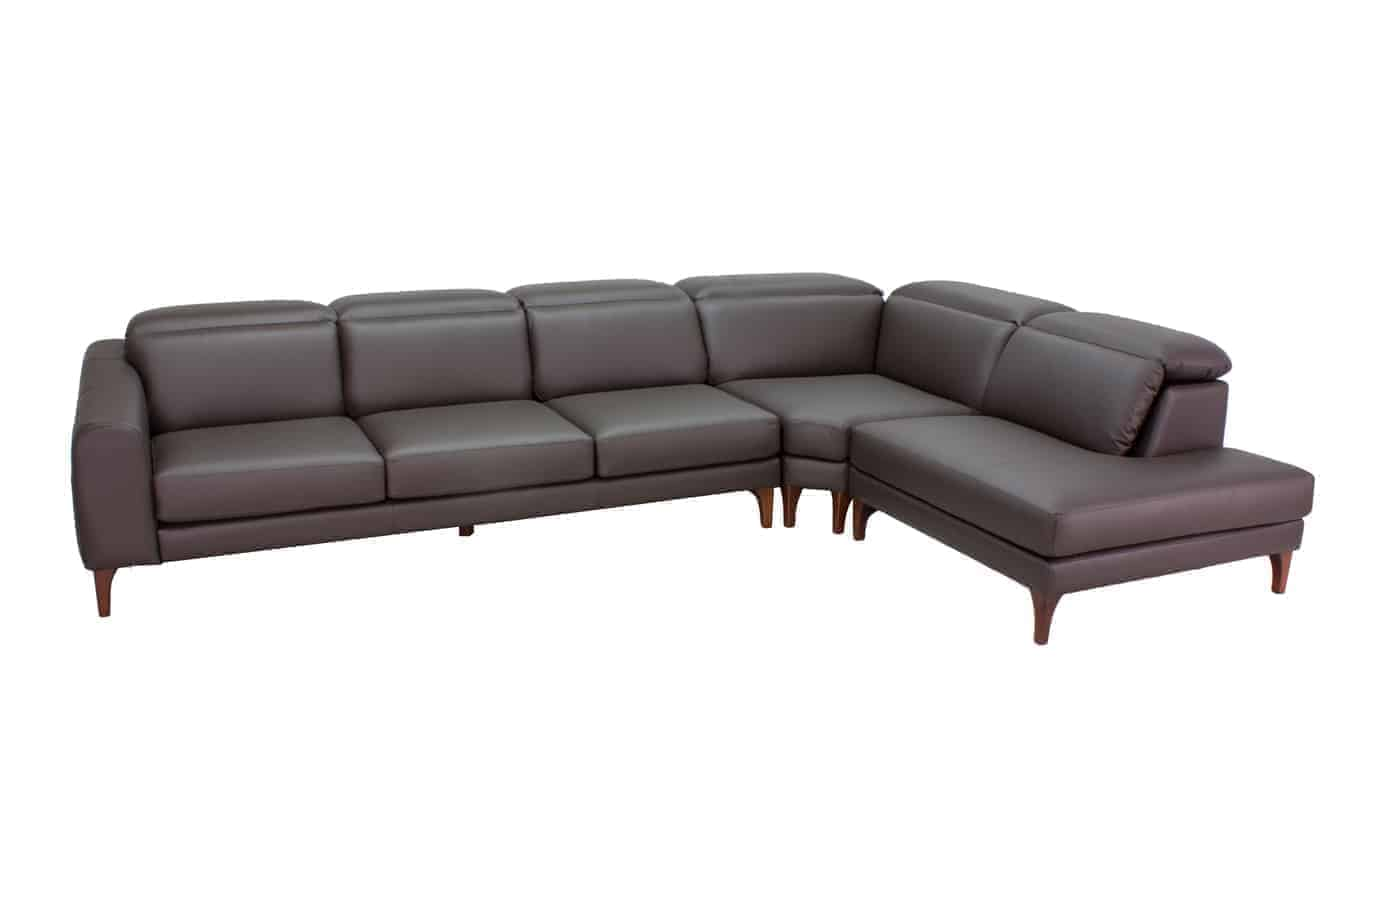 Tennyson Chaise Corner Modular Lounge With Adjustable Headrest -Leather